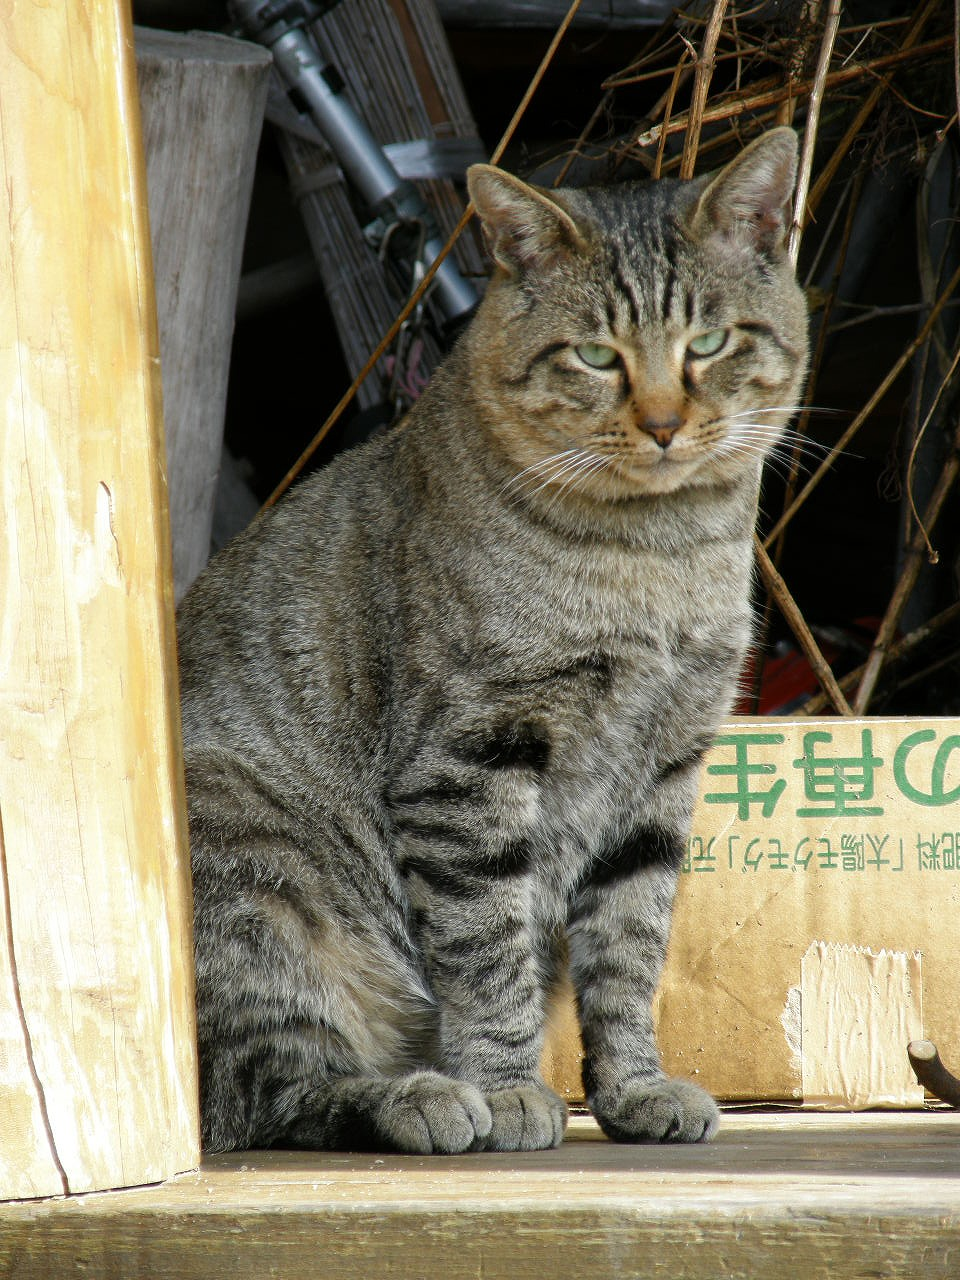 http://upload.wikimedia.org/wikipedia/commons/a/a8/Homeless_cat_%E9%87%8E%E8%89%AF%E7%8C%ABC102574.jpg